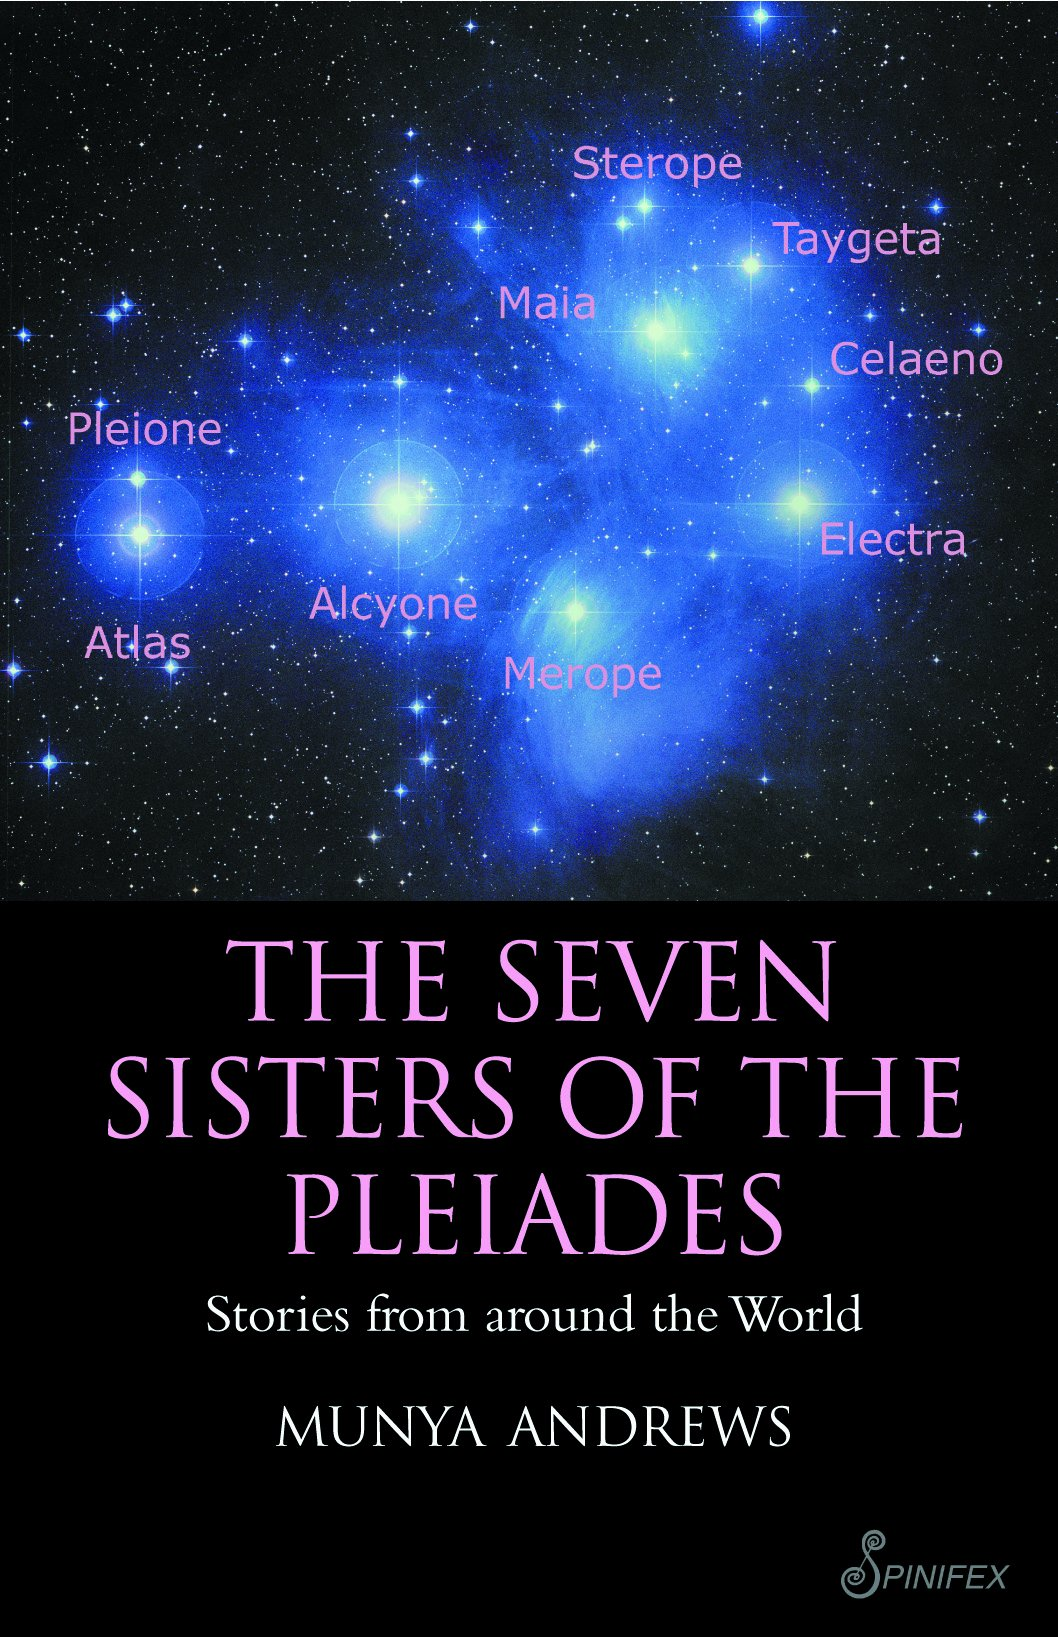 The Seven Sisters of the Pleiades: Stories from Around the